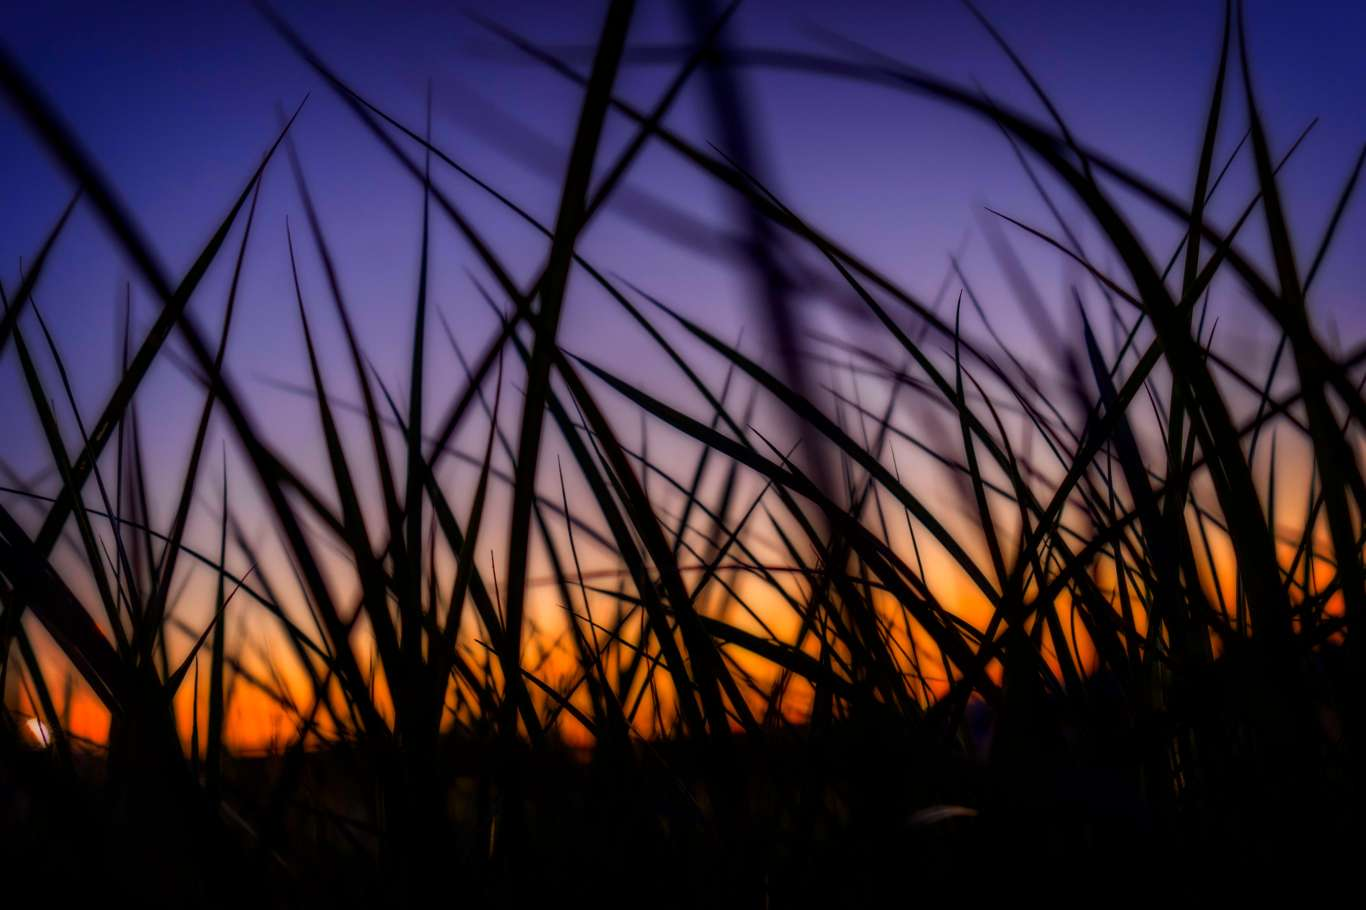 Summer grass at sunset.